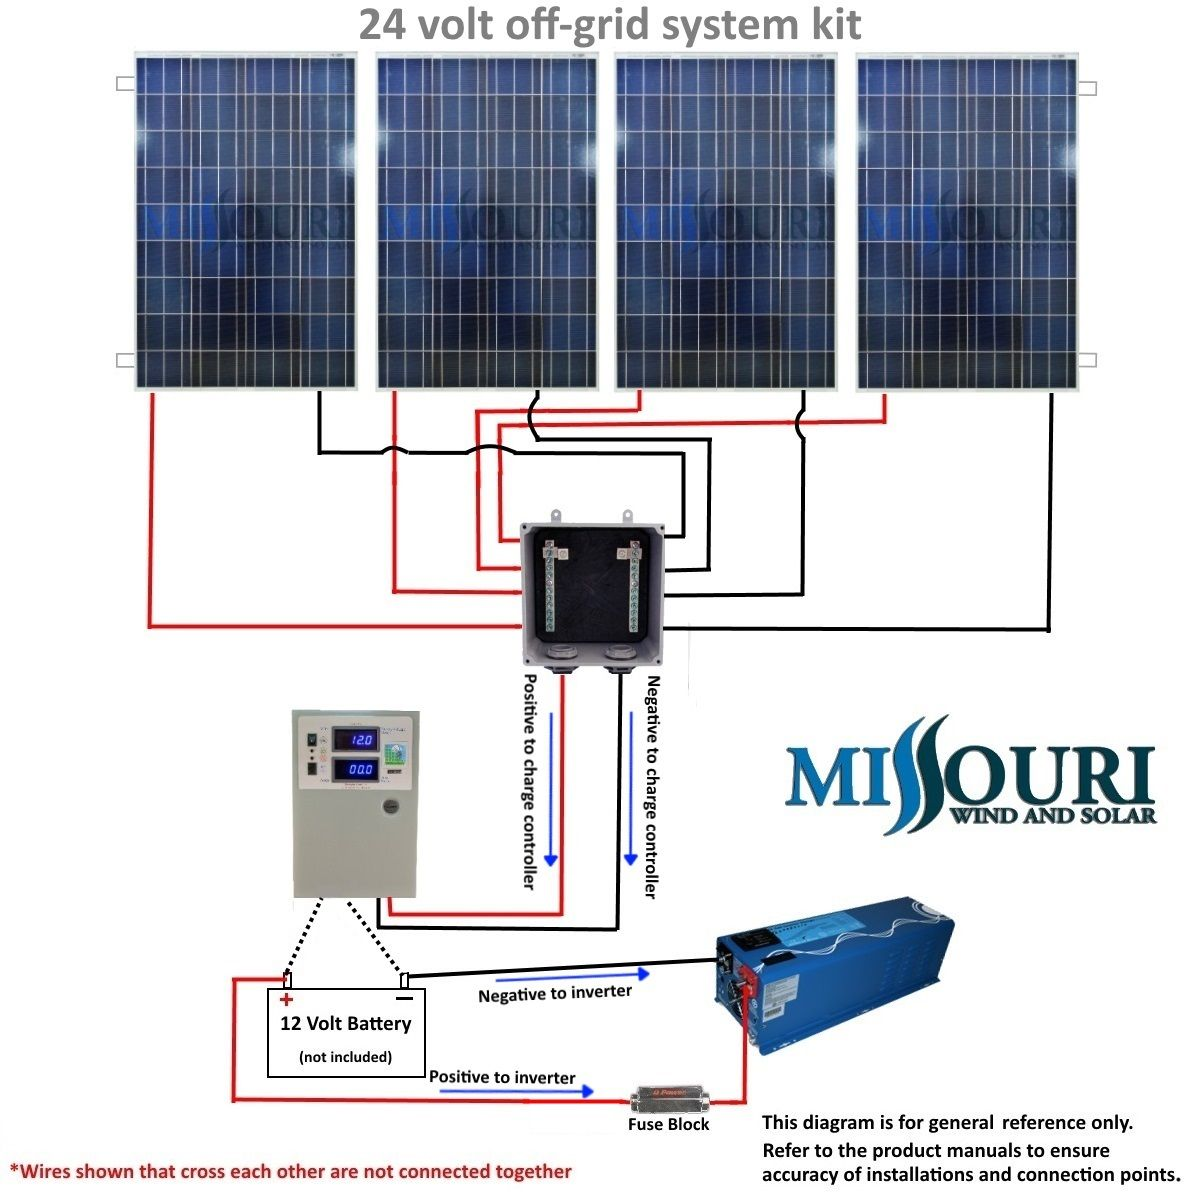 24 volt solar power wiring diagram wiring diagrams1000 watt 24 volt off grid solar panel kit [ 1200 x 1200 Pixel ]